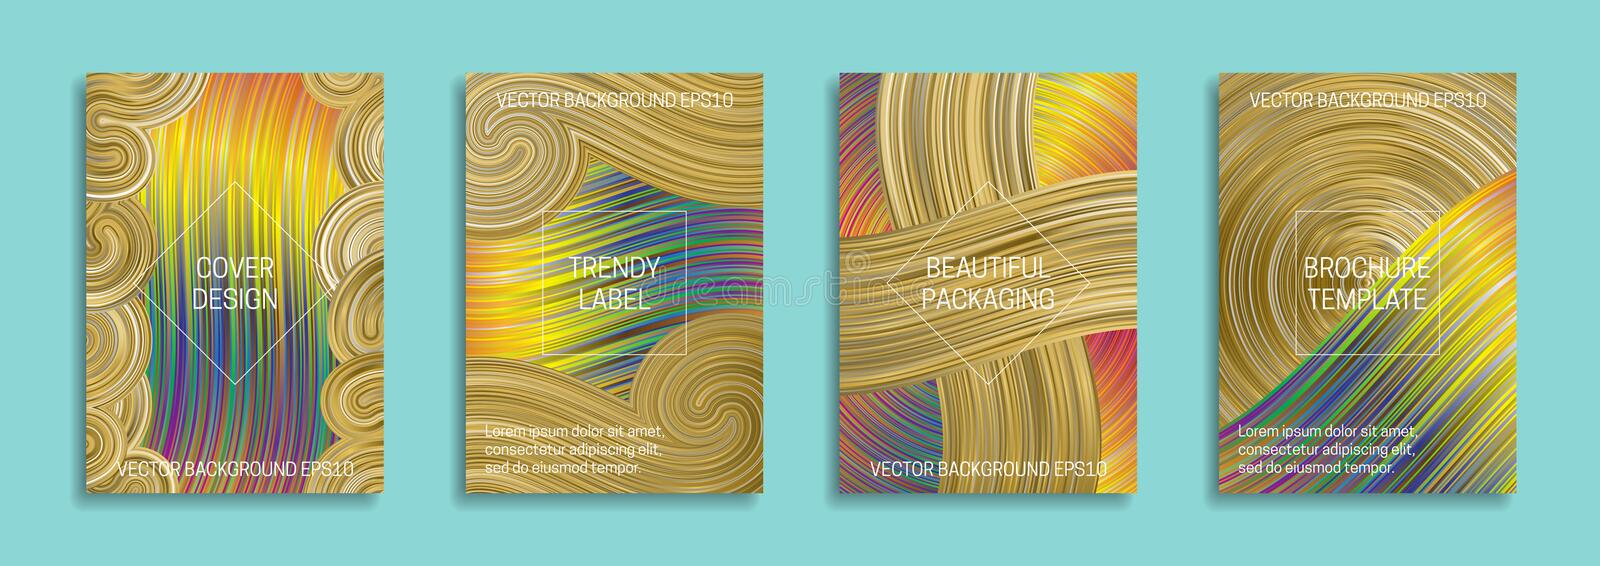 Holographic backgrounds for cover design. Trendy labels for beautiful packaging. Bright intensive brochure templates royalty free illustration